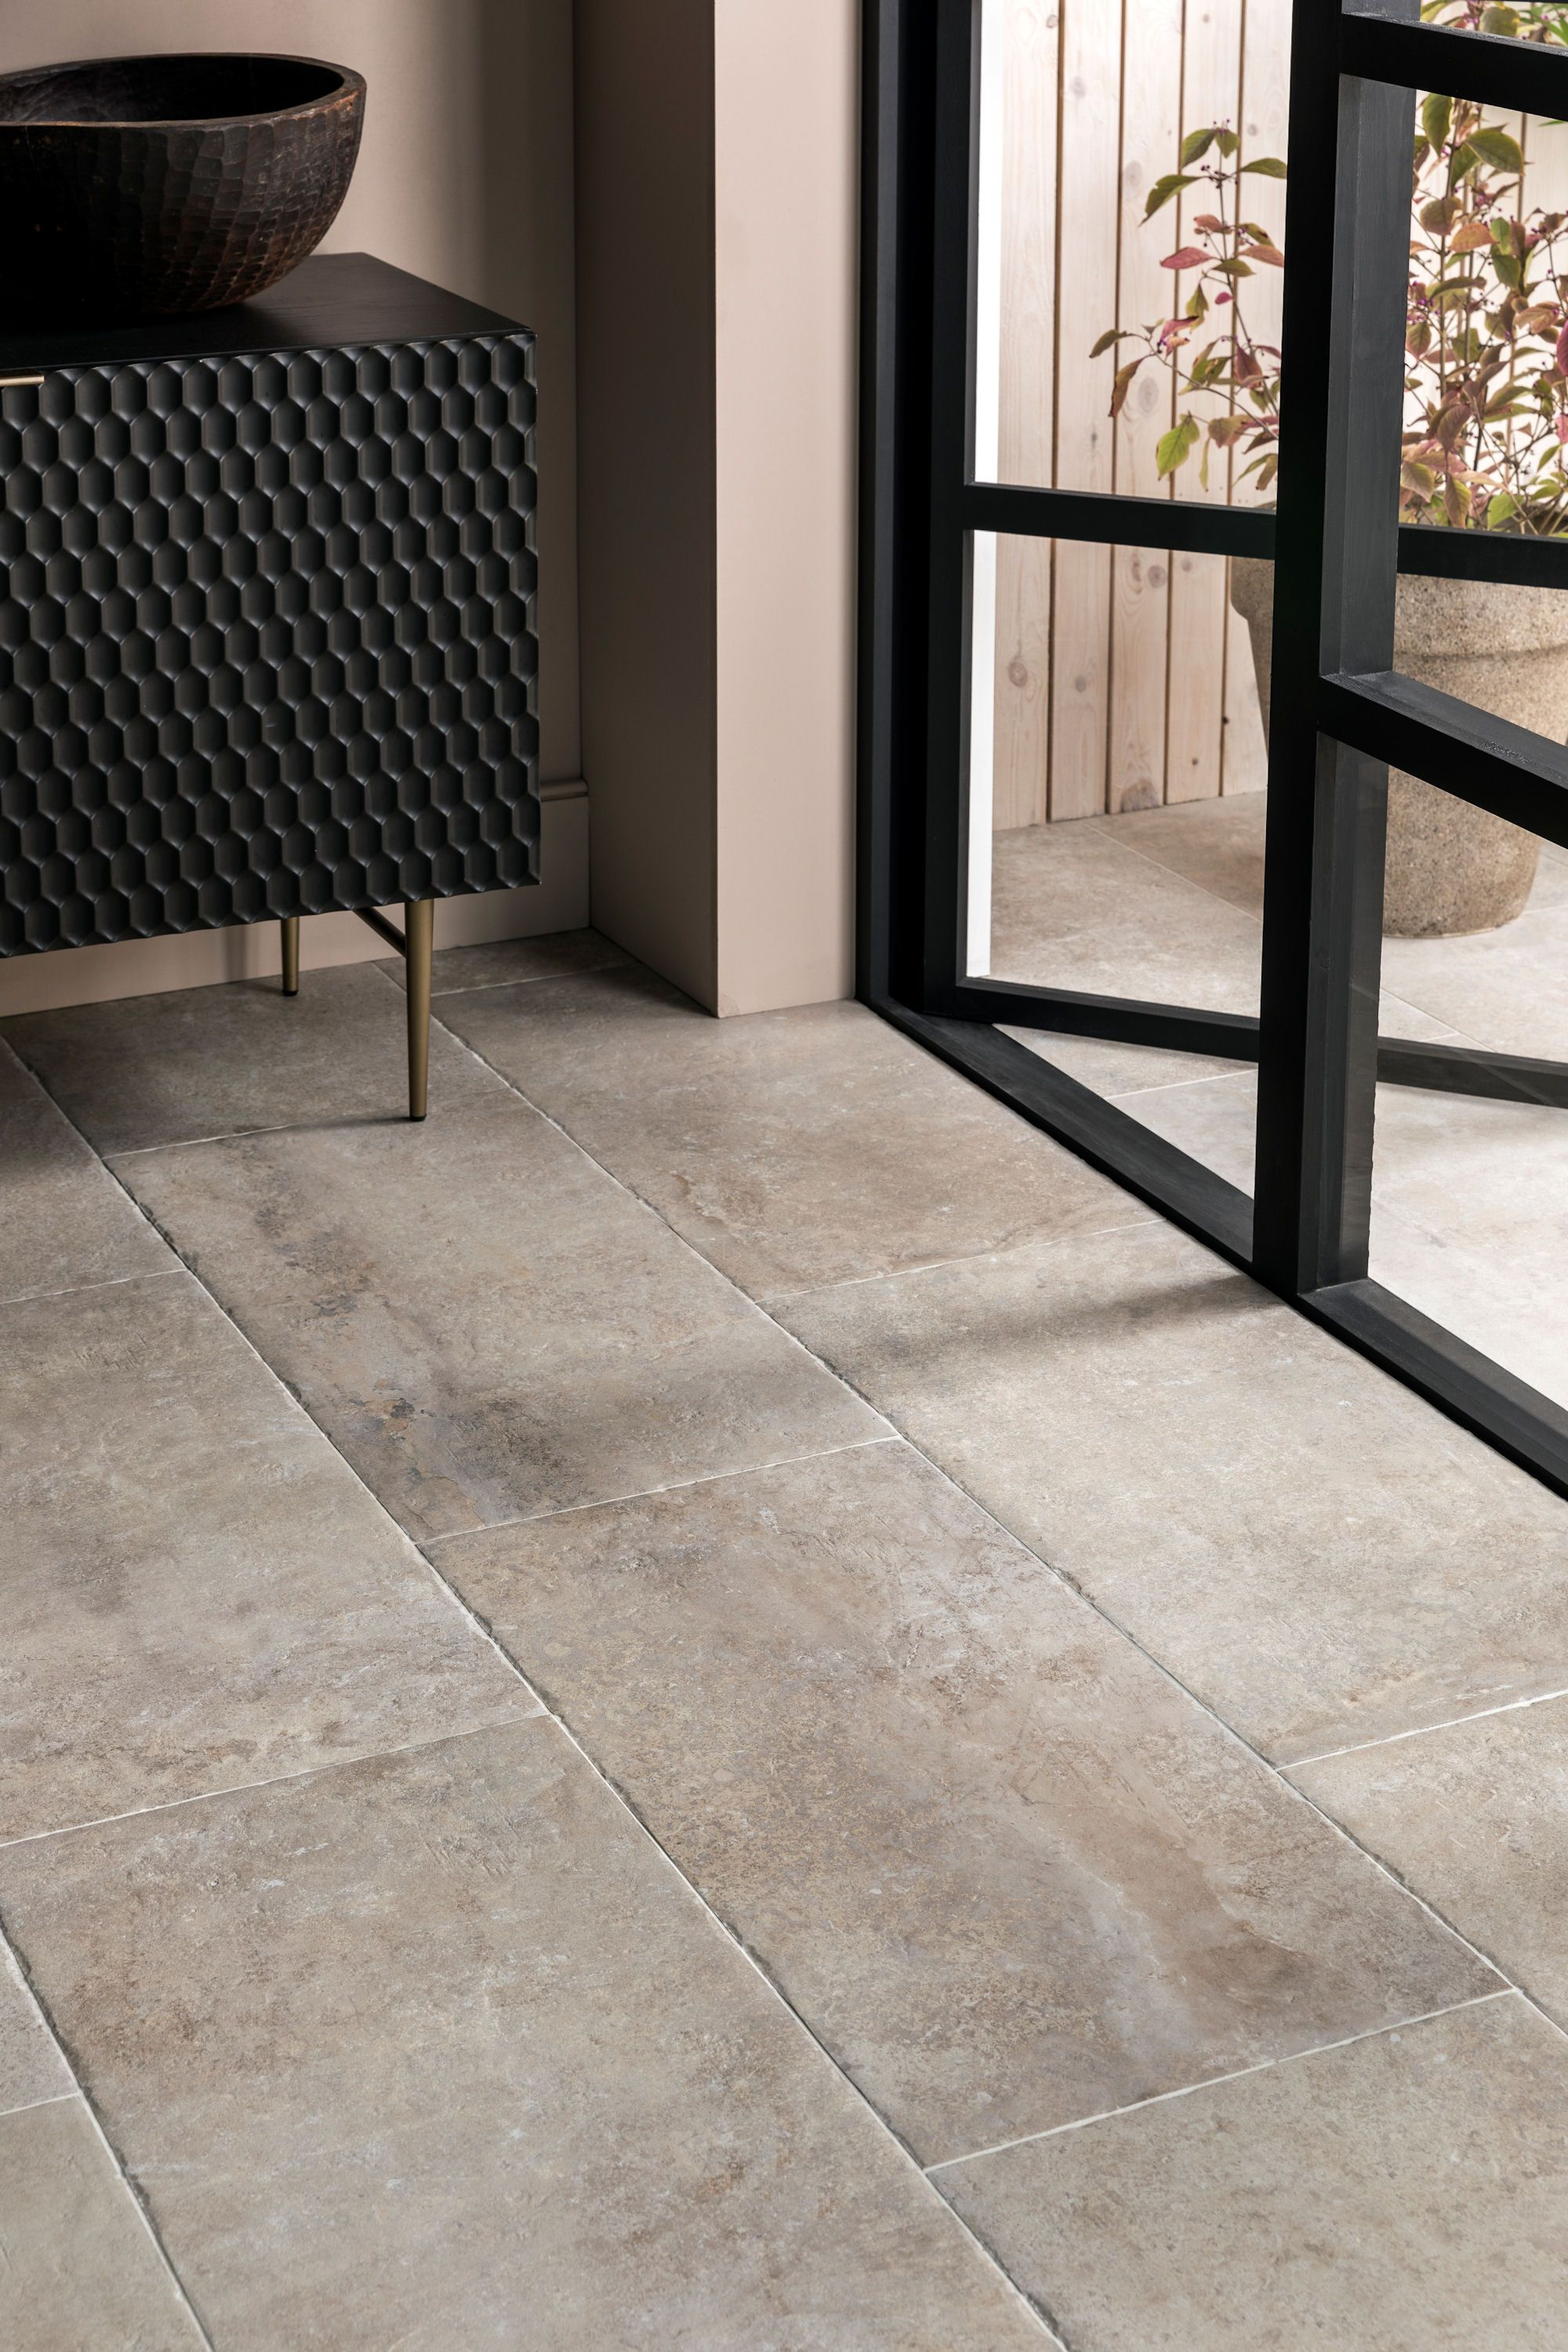 Rinser Naturstein Hendre Blanc Porcelain Tile | Mandarin Stone In 2020 | Outdoor Porcelain Tile, Patio Tiles, Outdoor Flooring